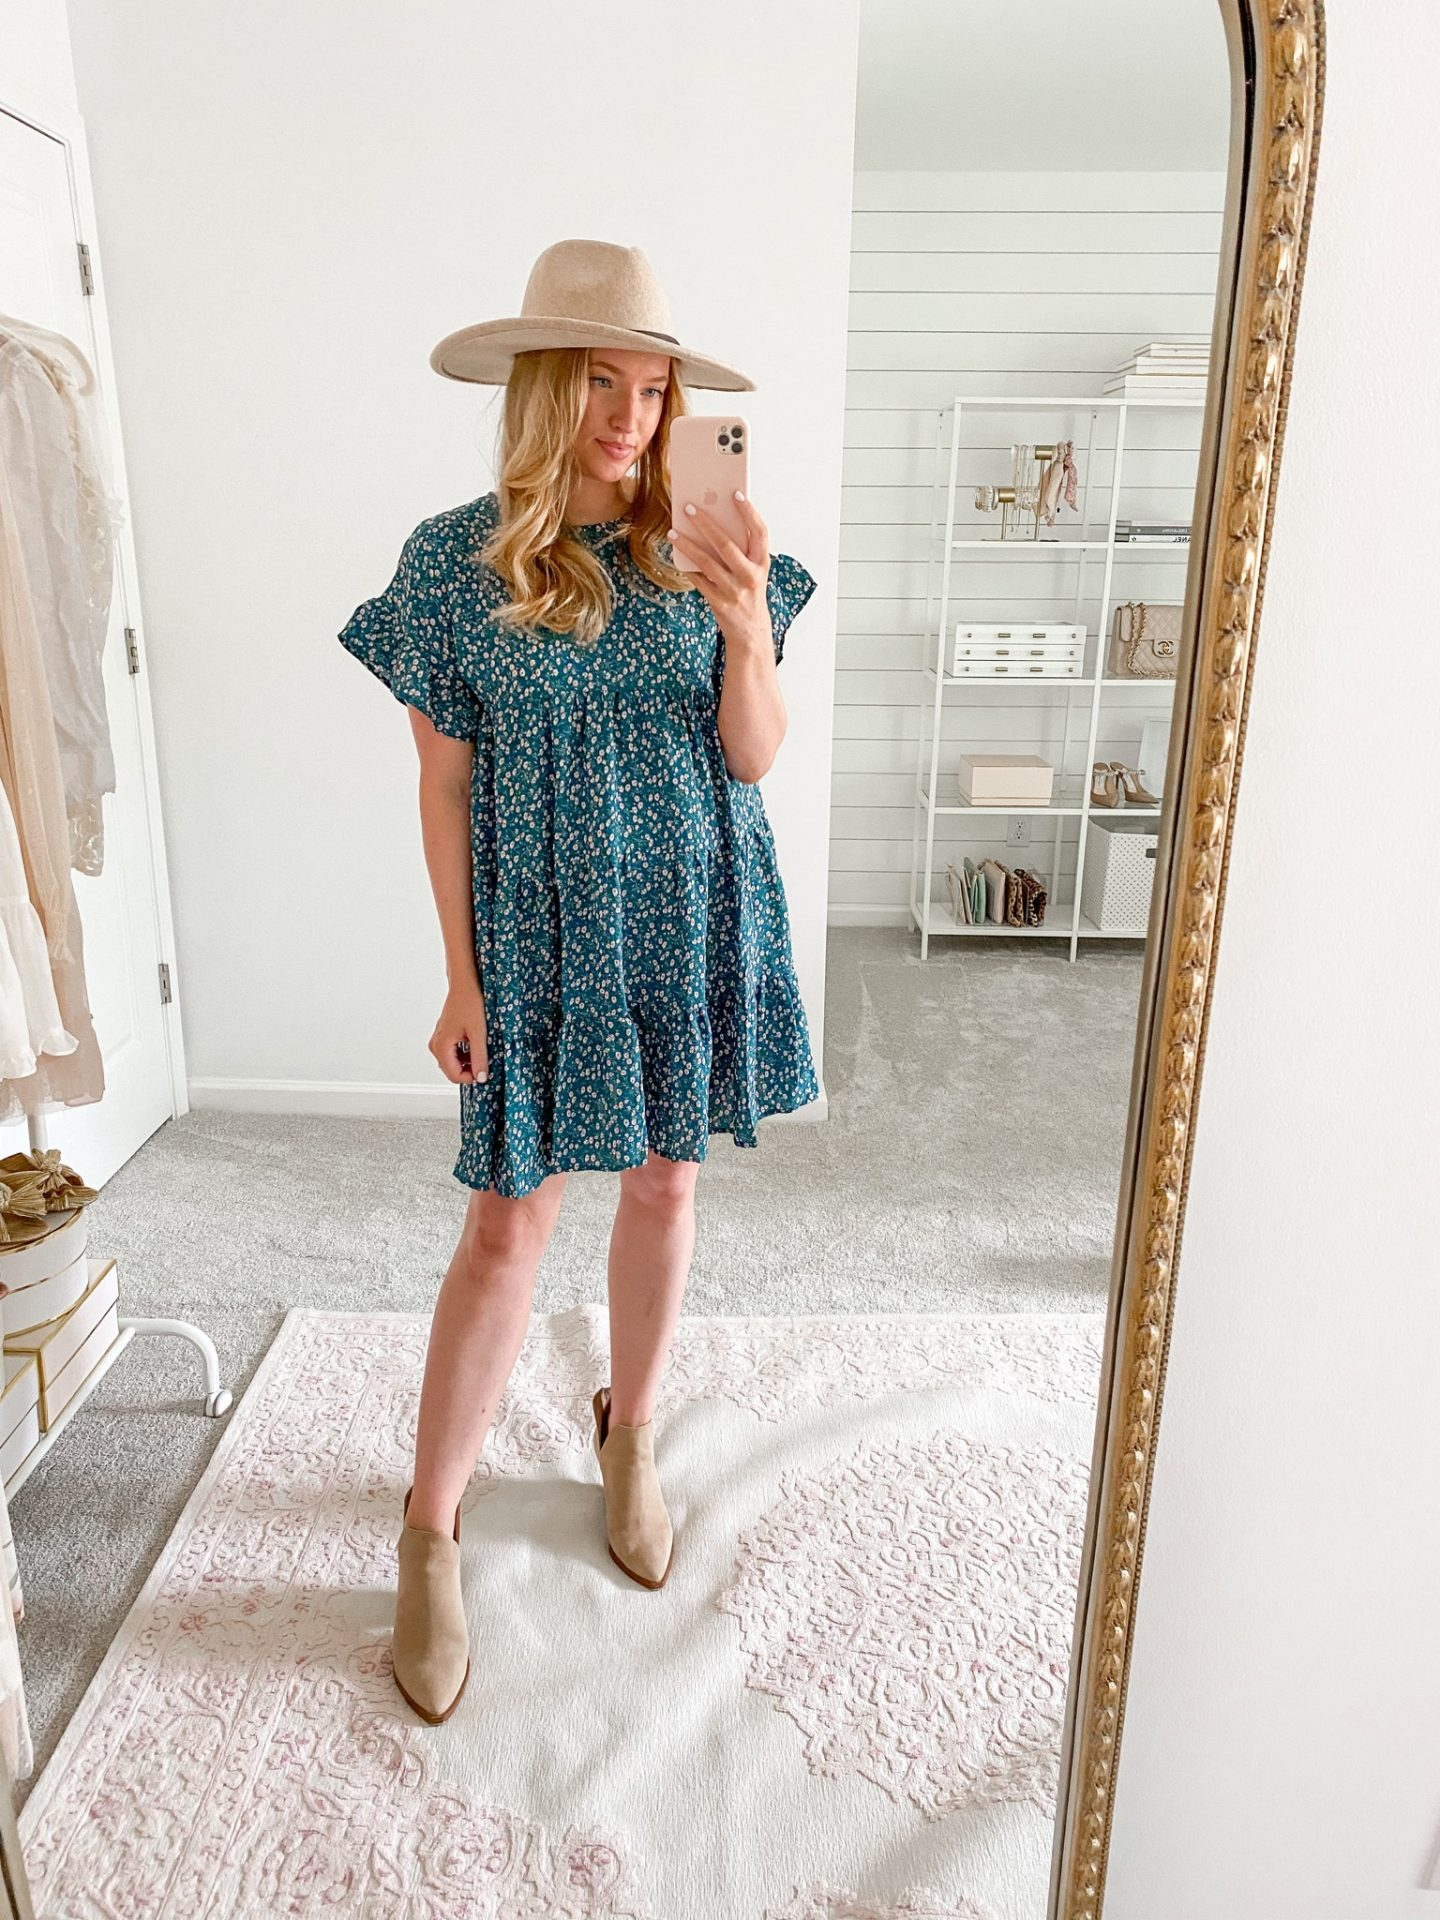 casual dresses for everyday wear   Hestia Dress by Petal + Pup